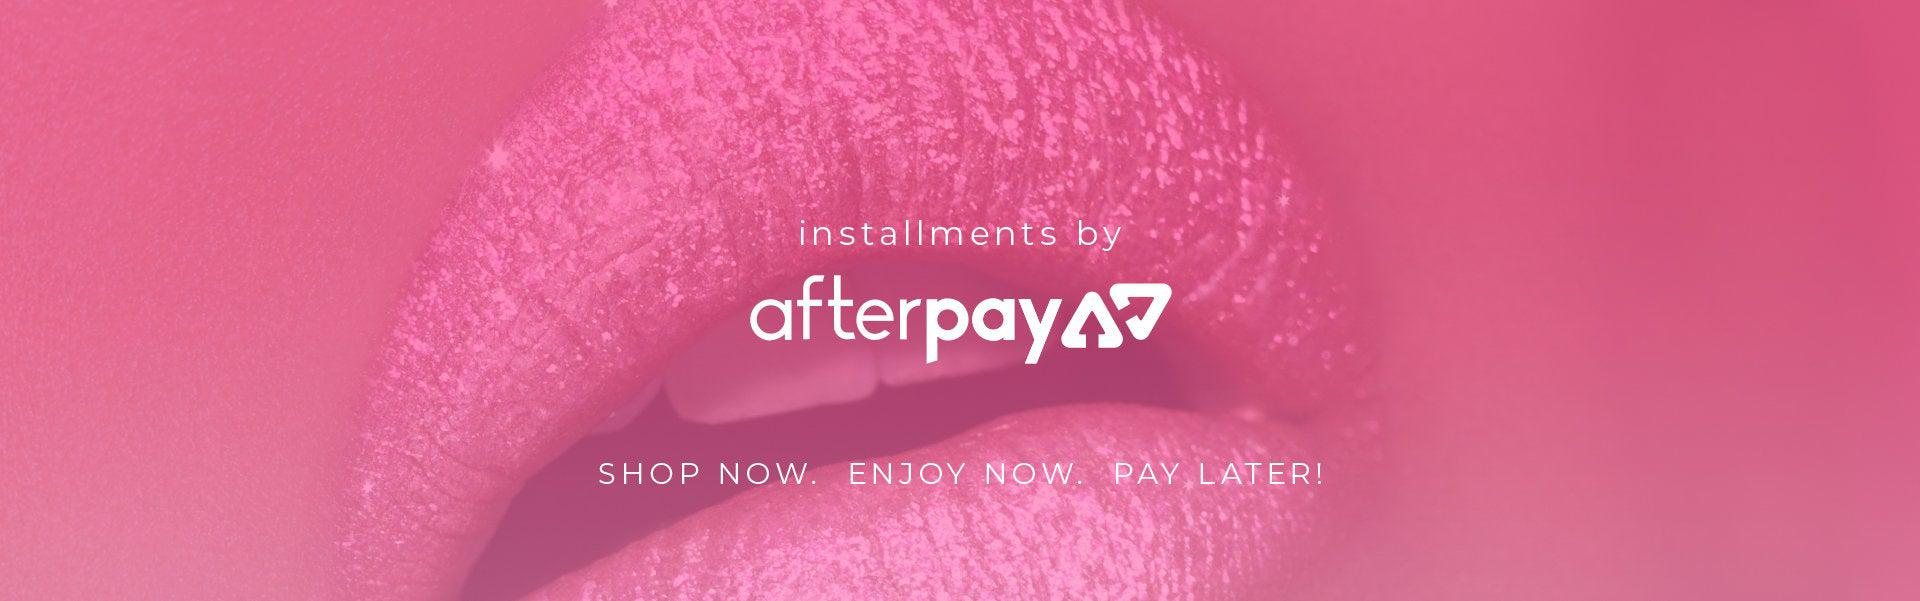 installments by afterpay. shop now. enjoy now. pay later!